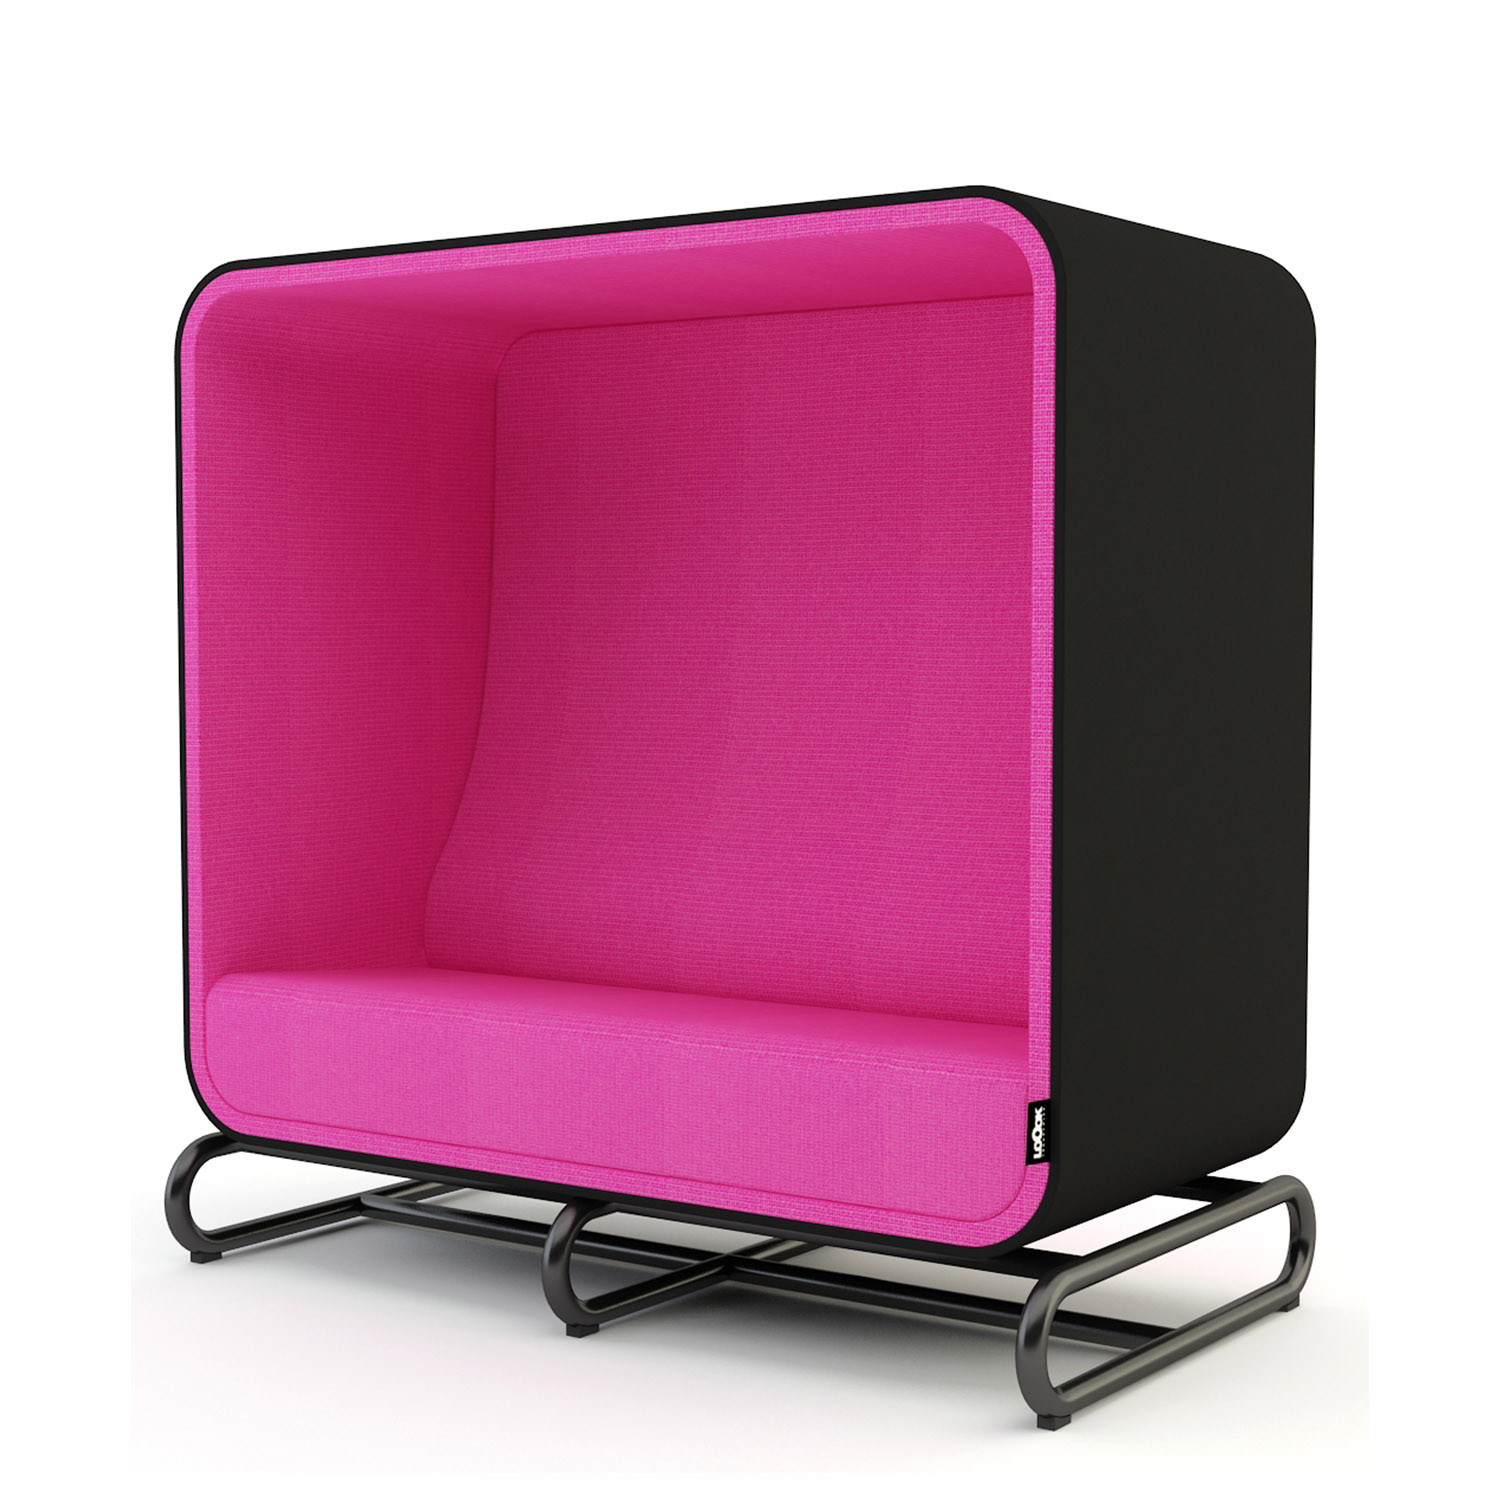 The Box Soft Seating for Agile Working